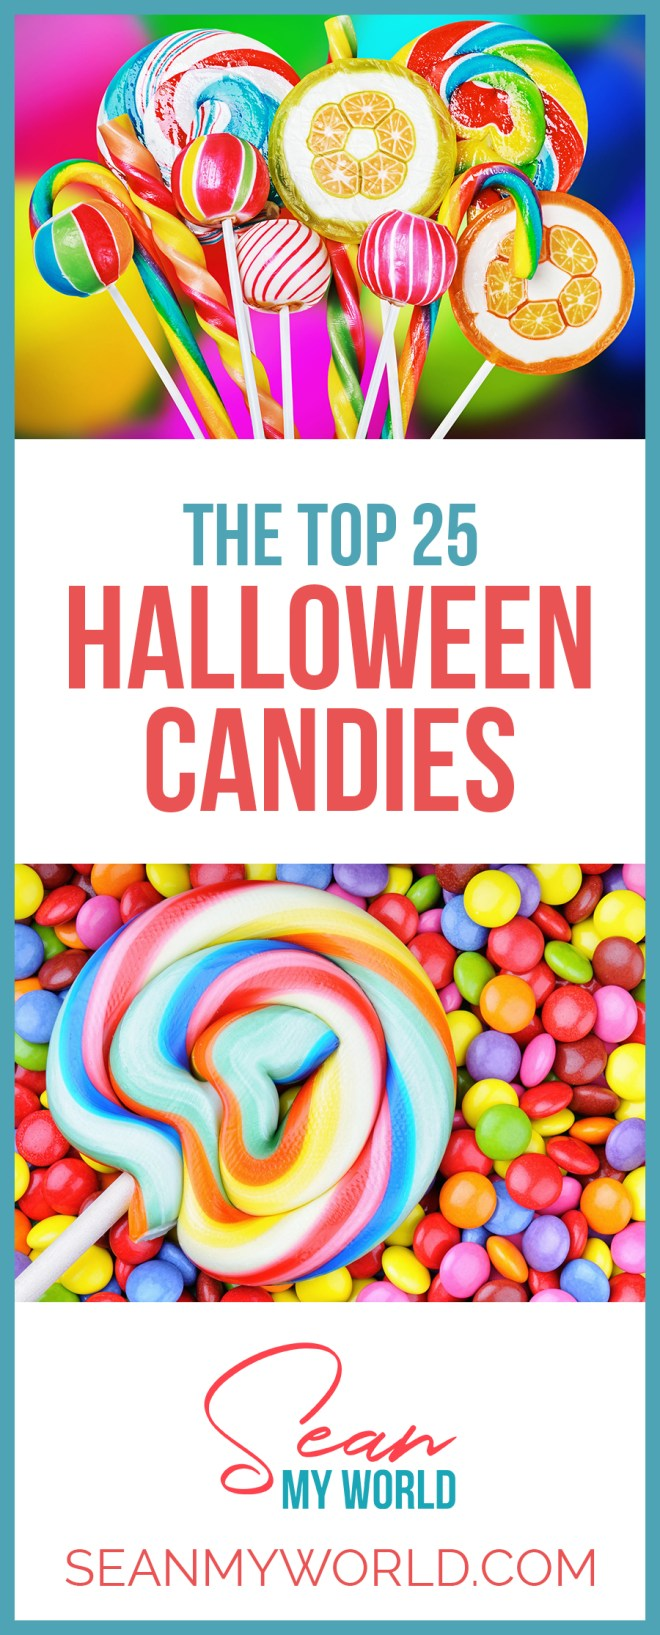 If you were to make a top Halloween candy list, what would be on it? If you ask me, these are the top 25 kid-approved candies to stock up on.